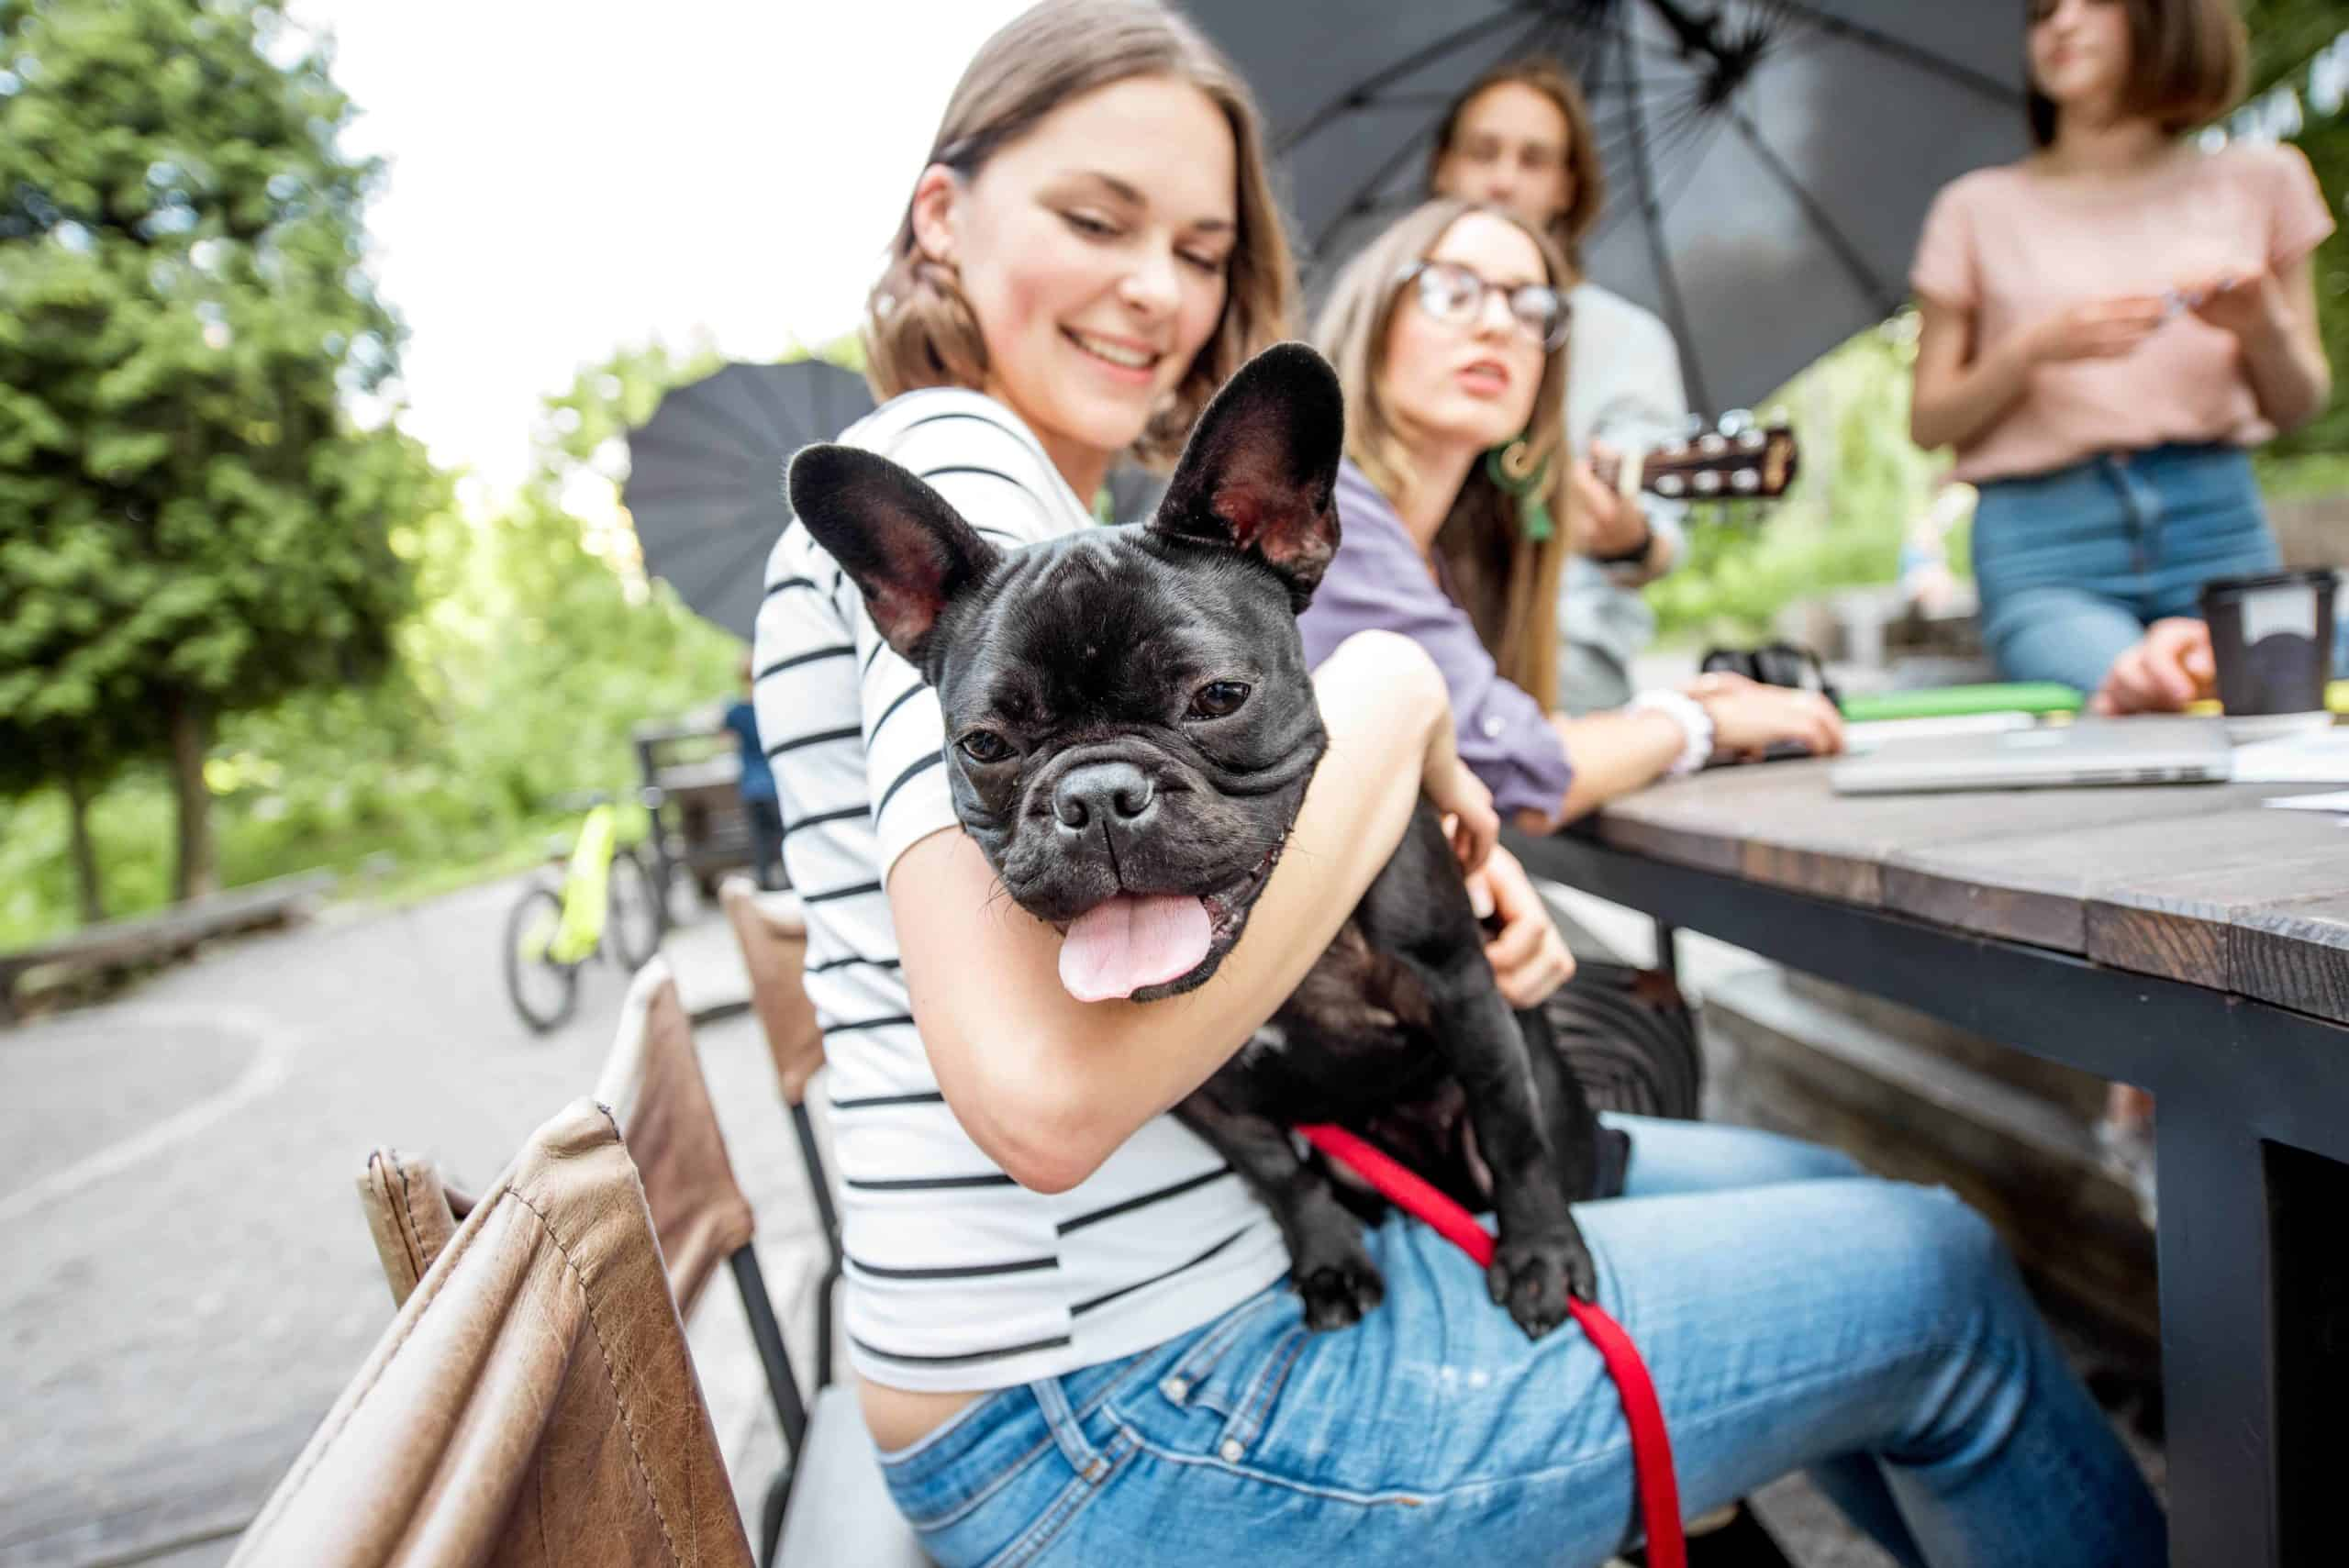 Woman holds French bulldog while studying with other college students.